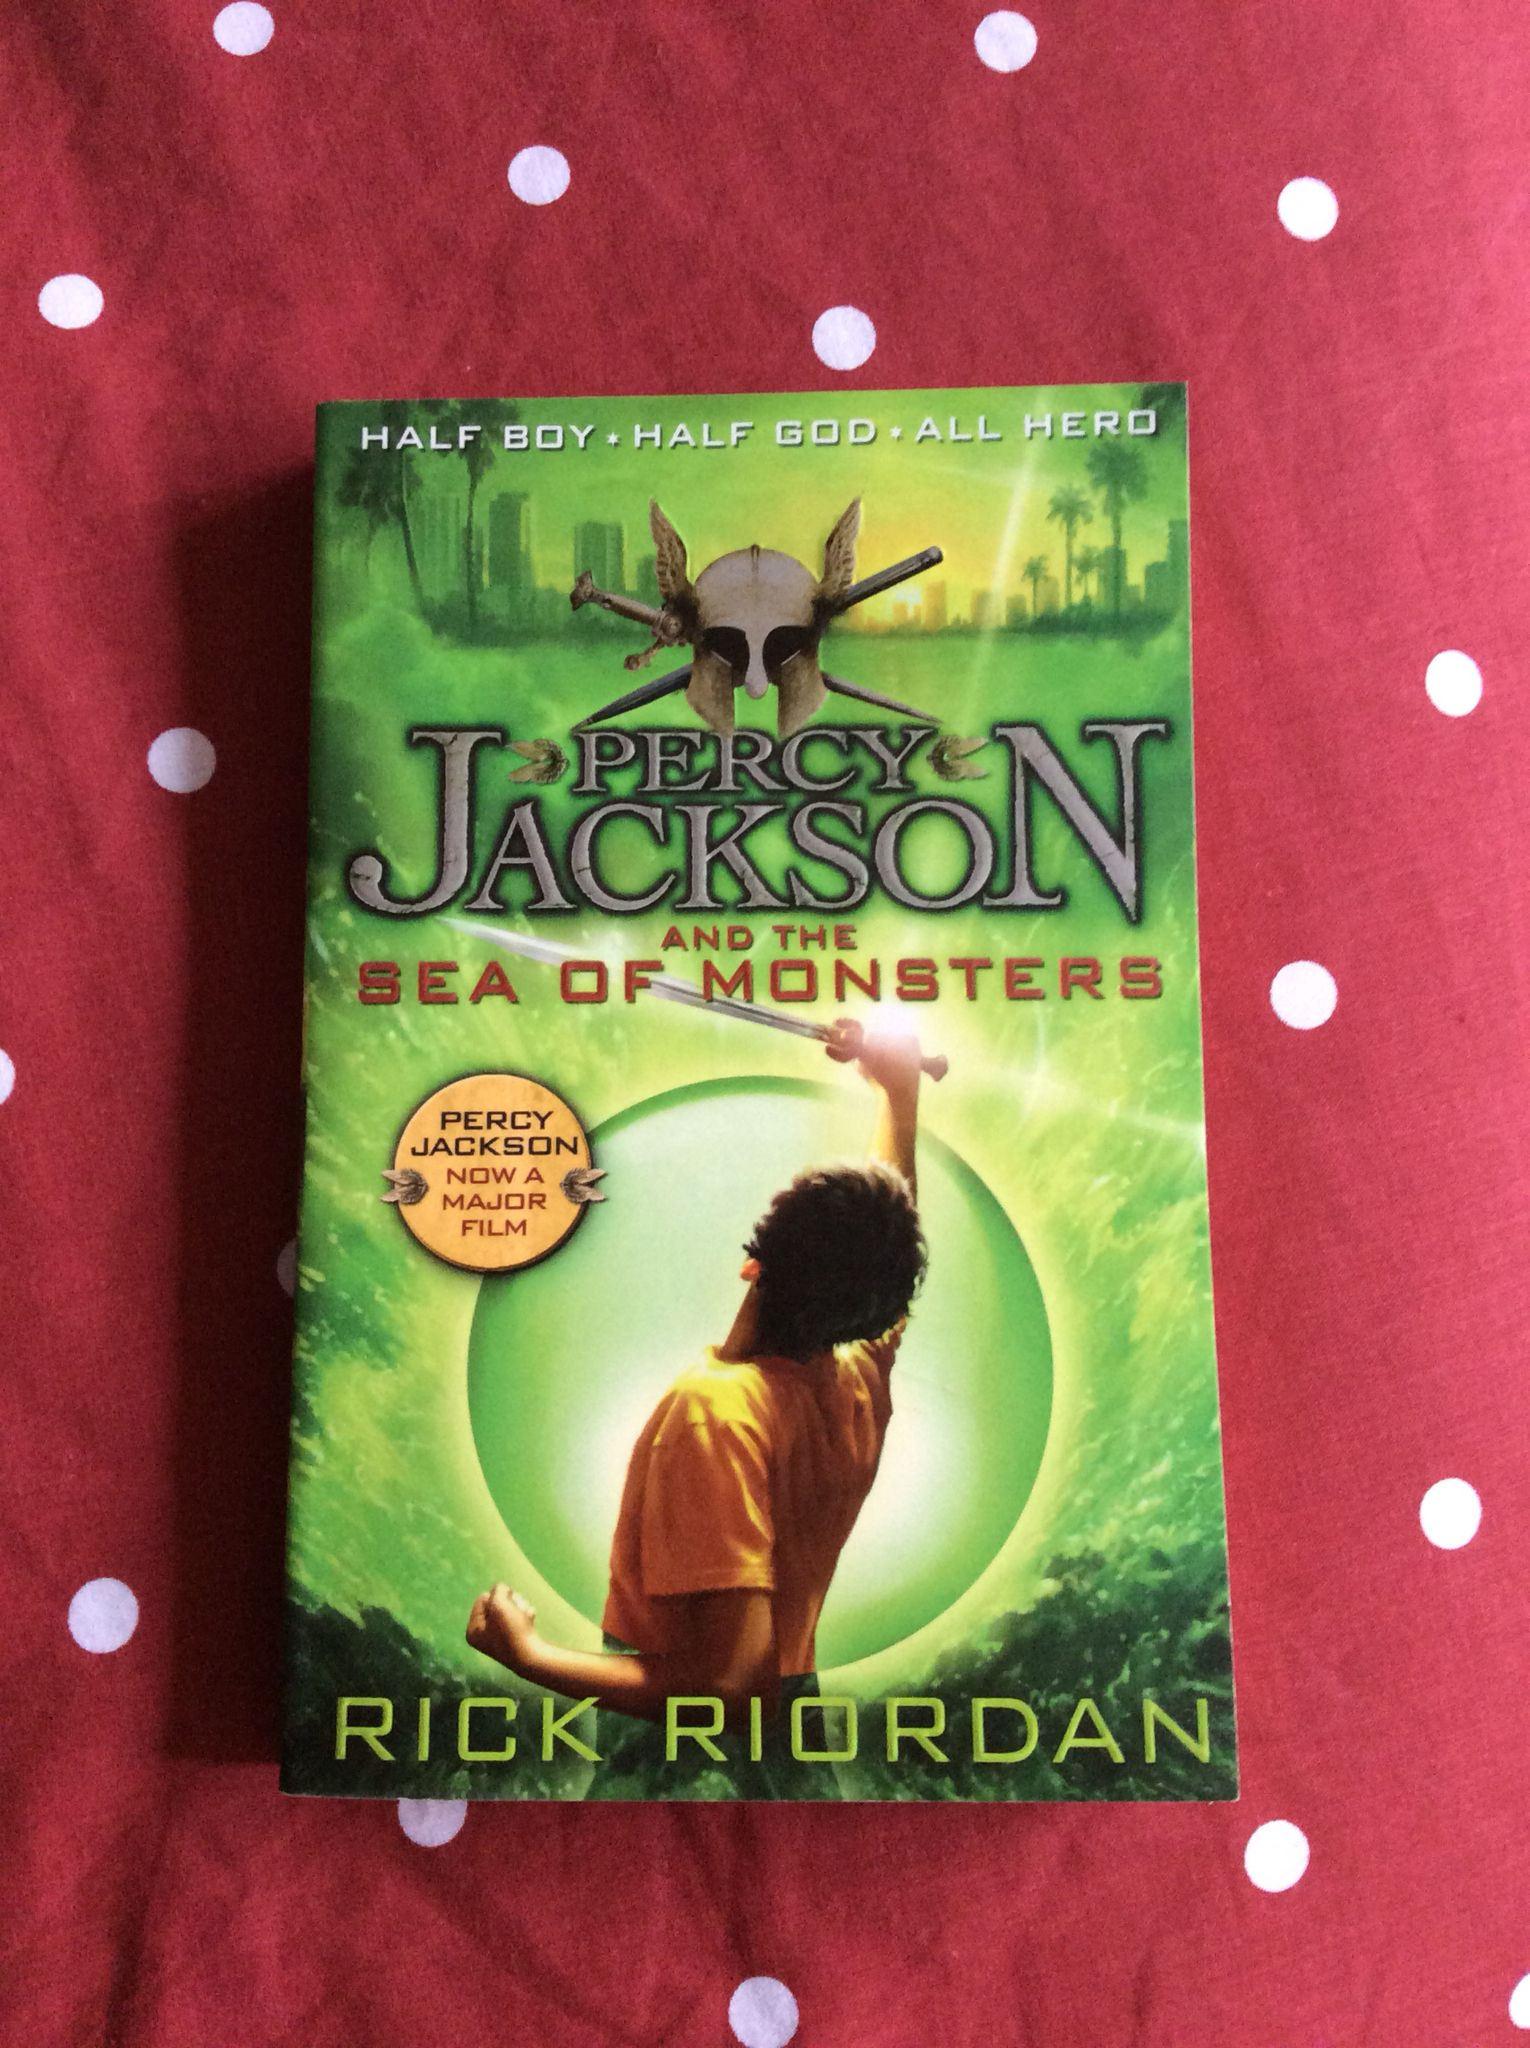 Book 2. Percy Jackson, the young demi-god, is back for his second exciting adventure in the bestselling series by Rick Riordan.  You can't tell by looking at me that my dad is Poseidon, God of the Sea. It's not easy being a half-blood these days. You mortals can't even see the monsters we have to fight all the time. So when a game of dodgeball turned into a death match against an ugly gang of cannibal giants, I couldn't exactly ask my gym teacher for help.  And that was just for starters…